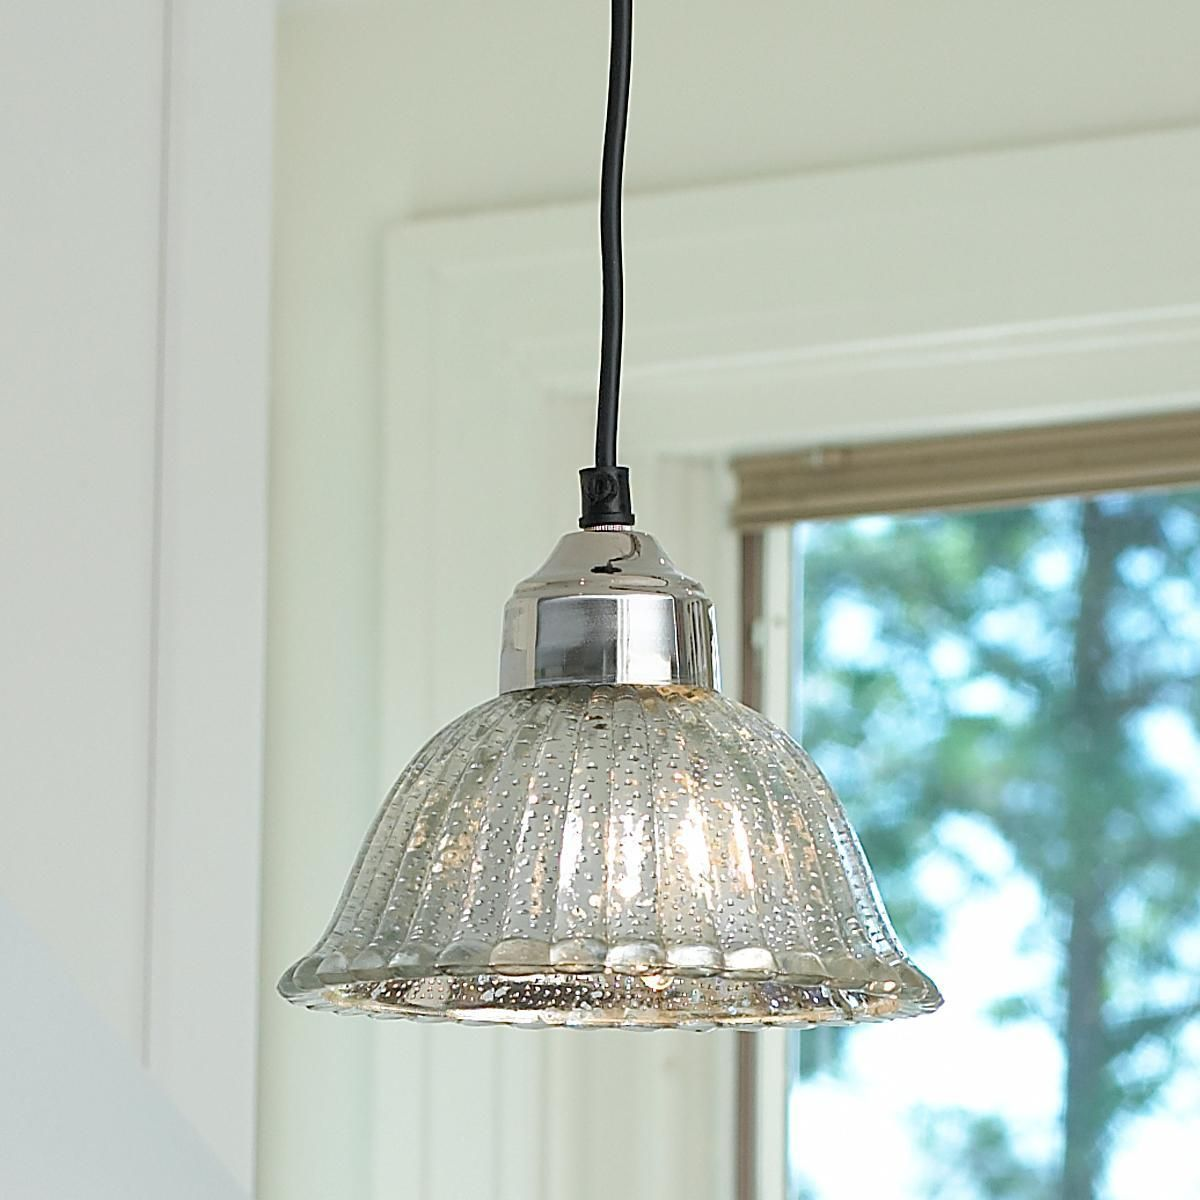 Ribbed Dome Mercury Glass Shade Pendant Light